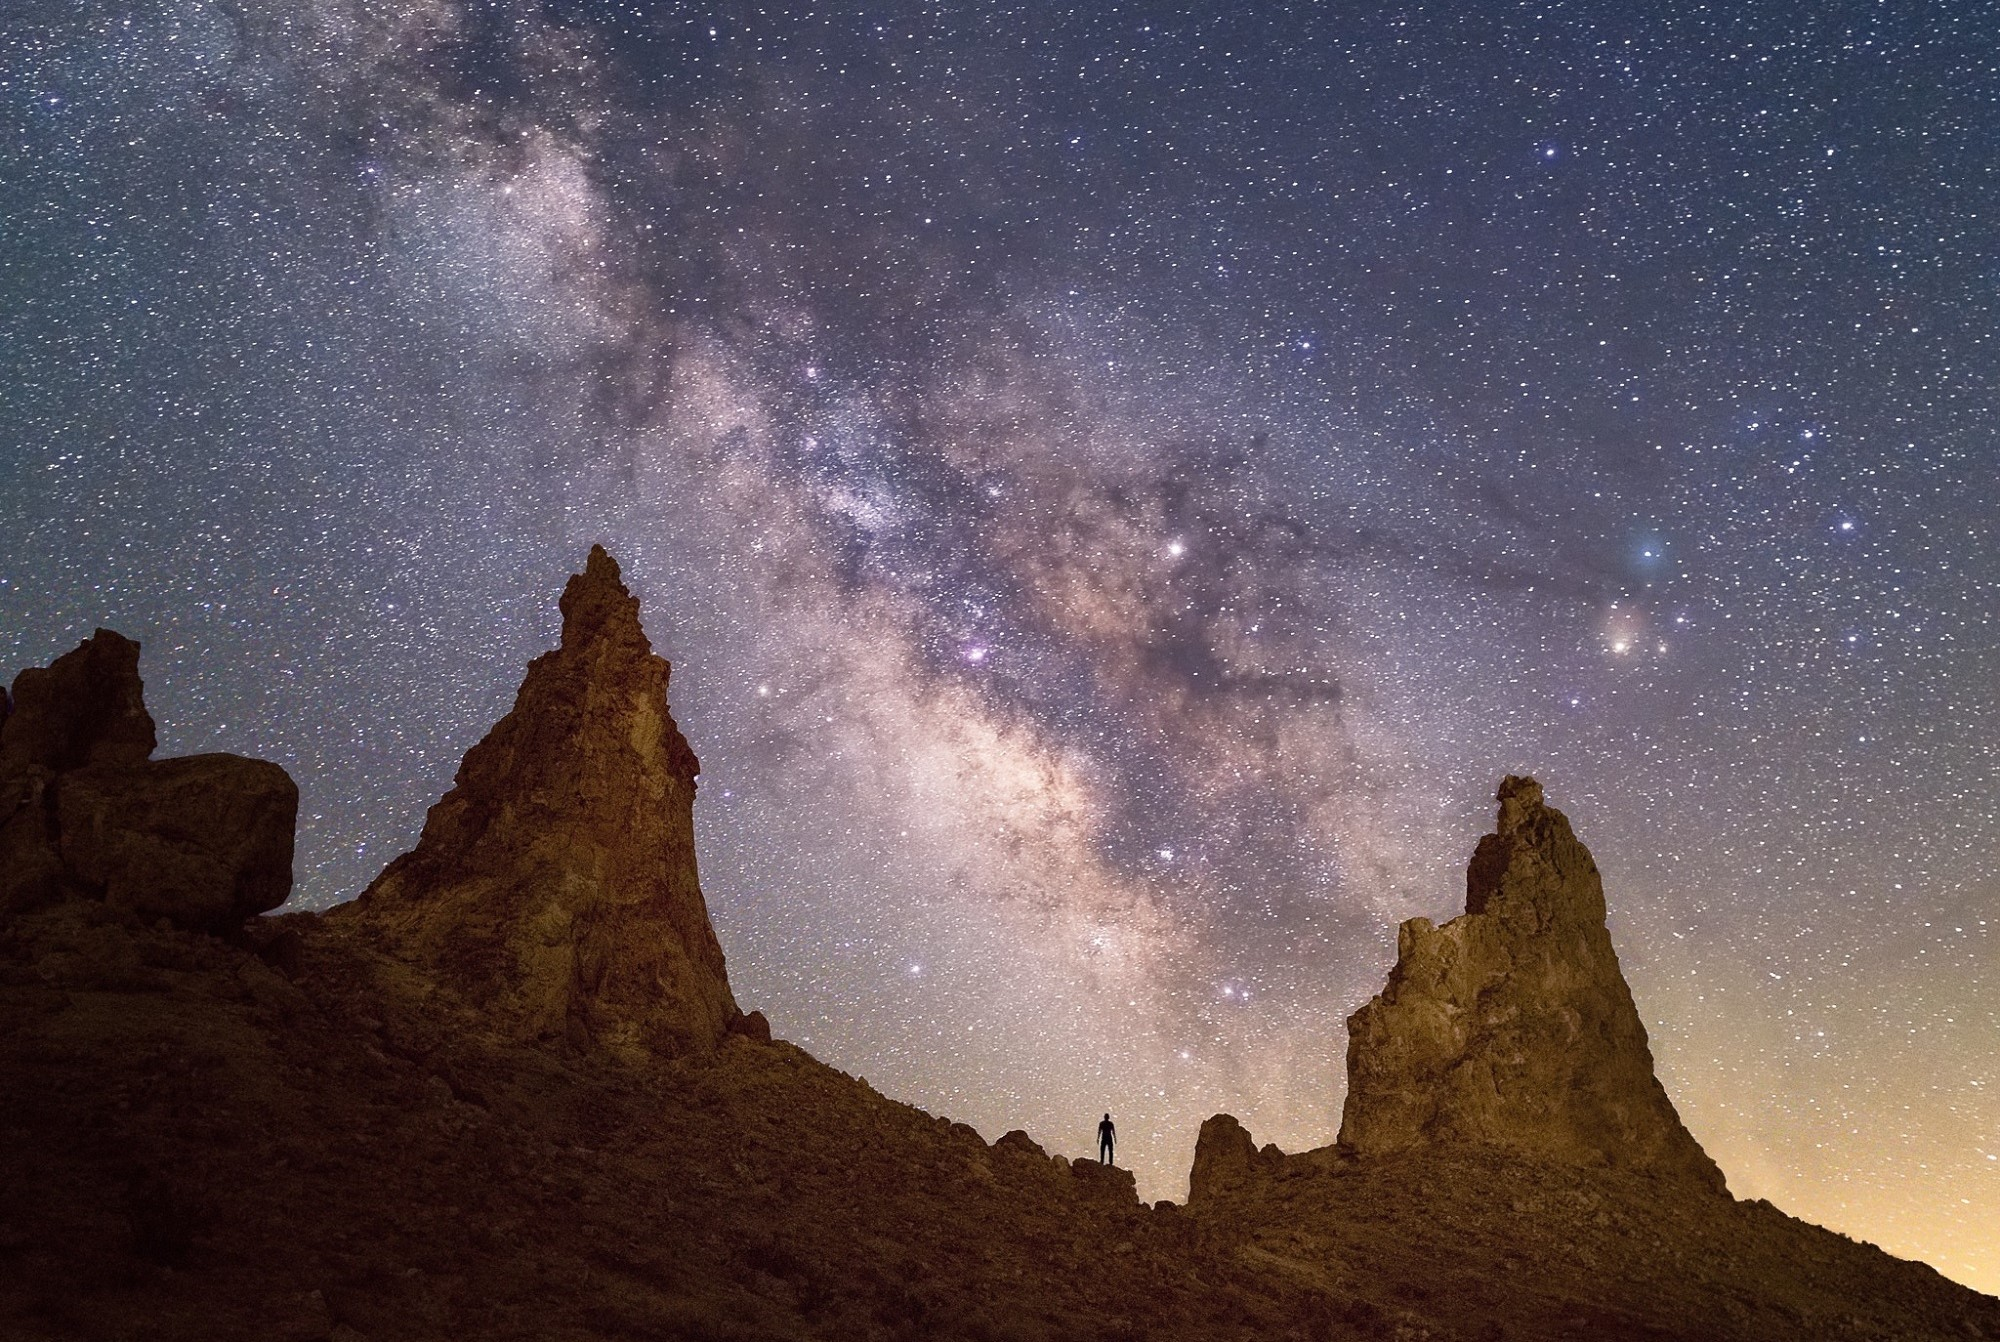 Image of the night sky with several sharp peaks in the foreground and a small person standing.